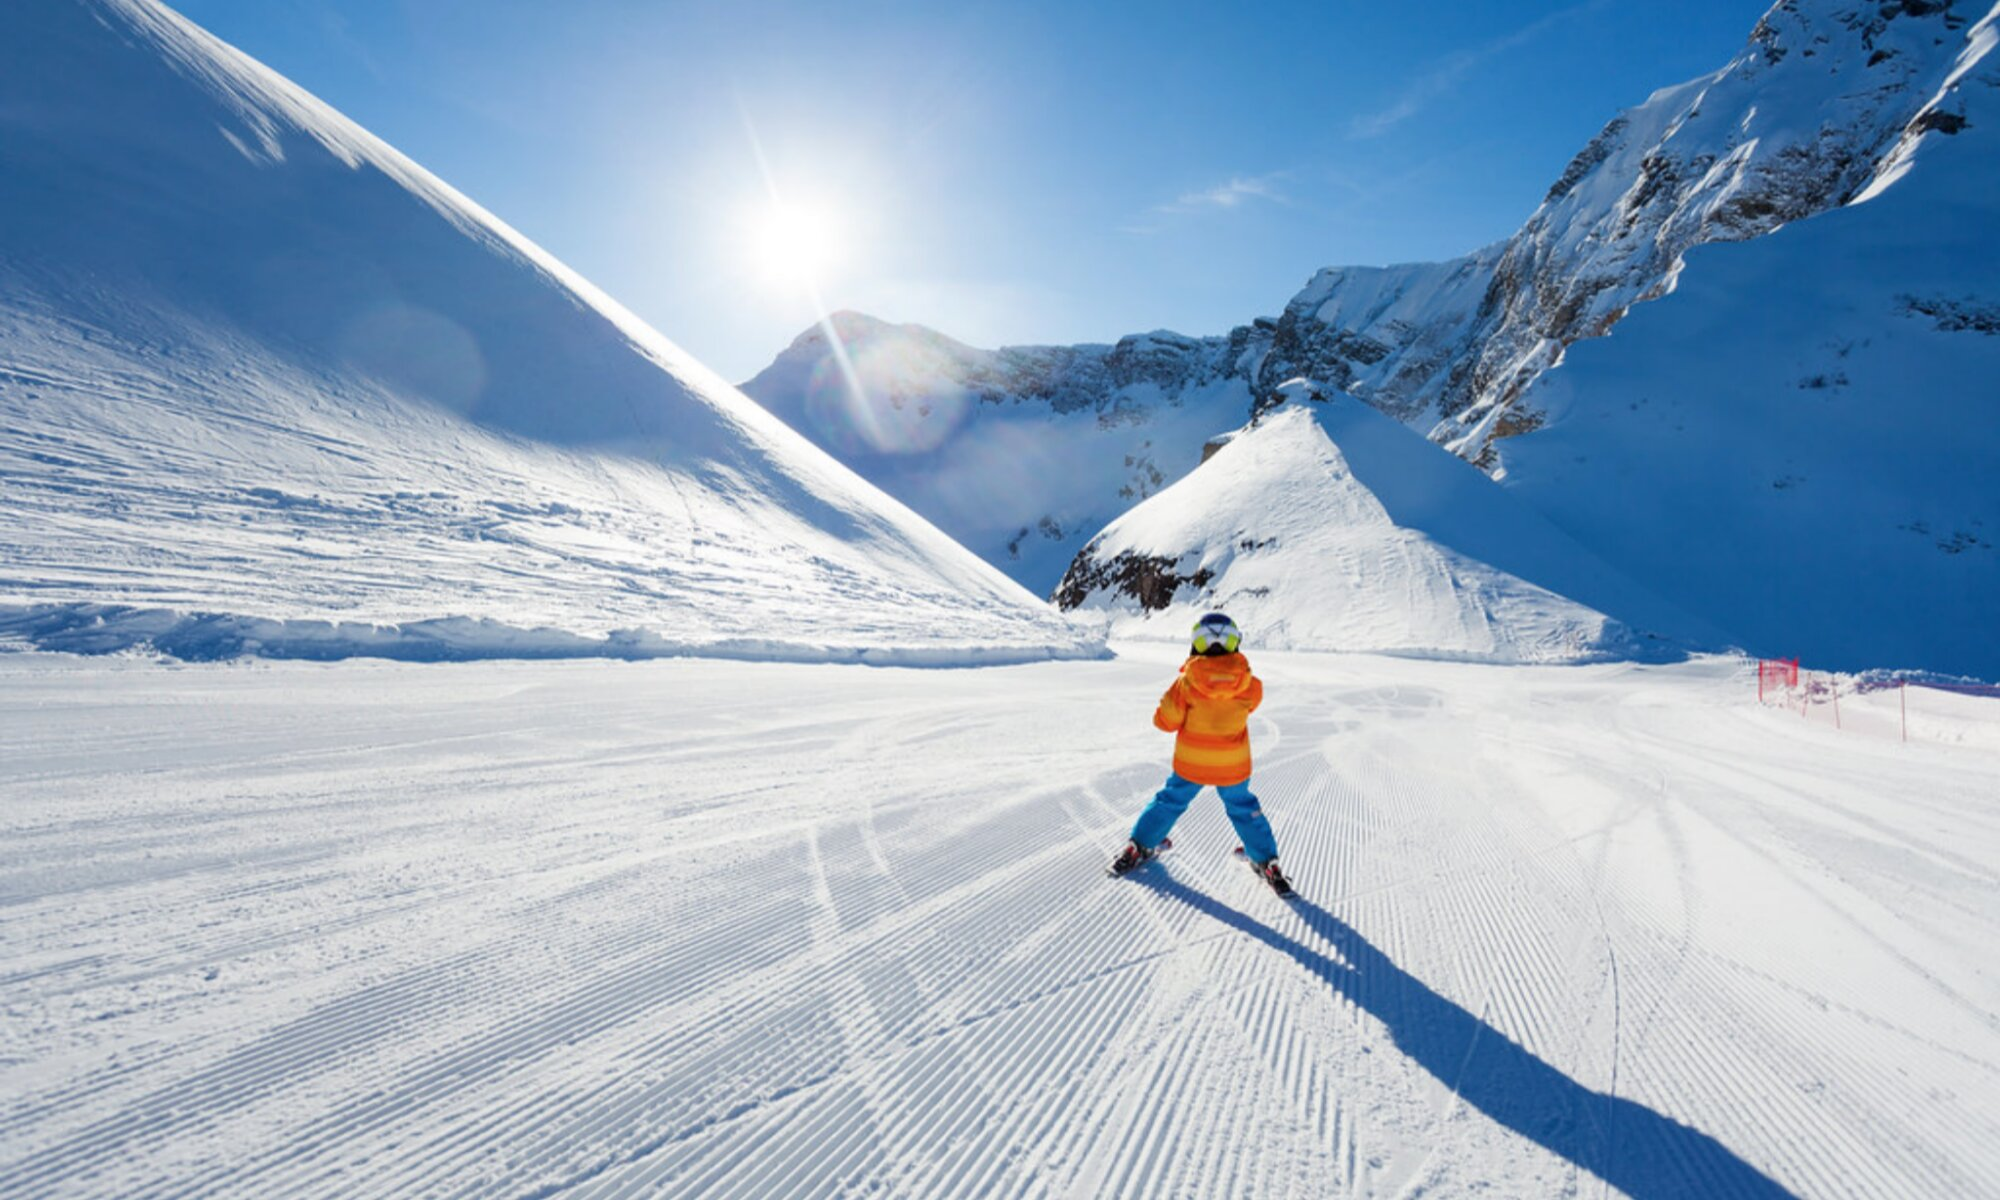 A young skier on a well-groomed beginner slope in Cortina d'Ampezzo.